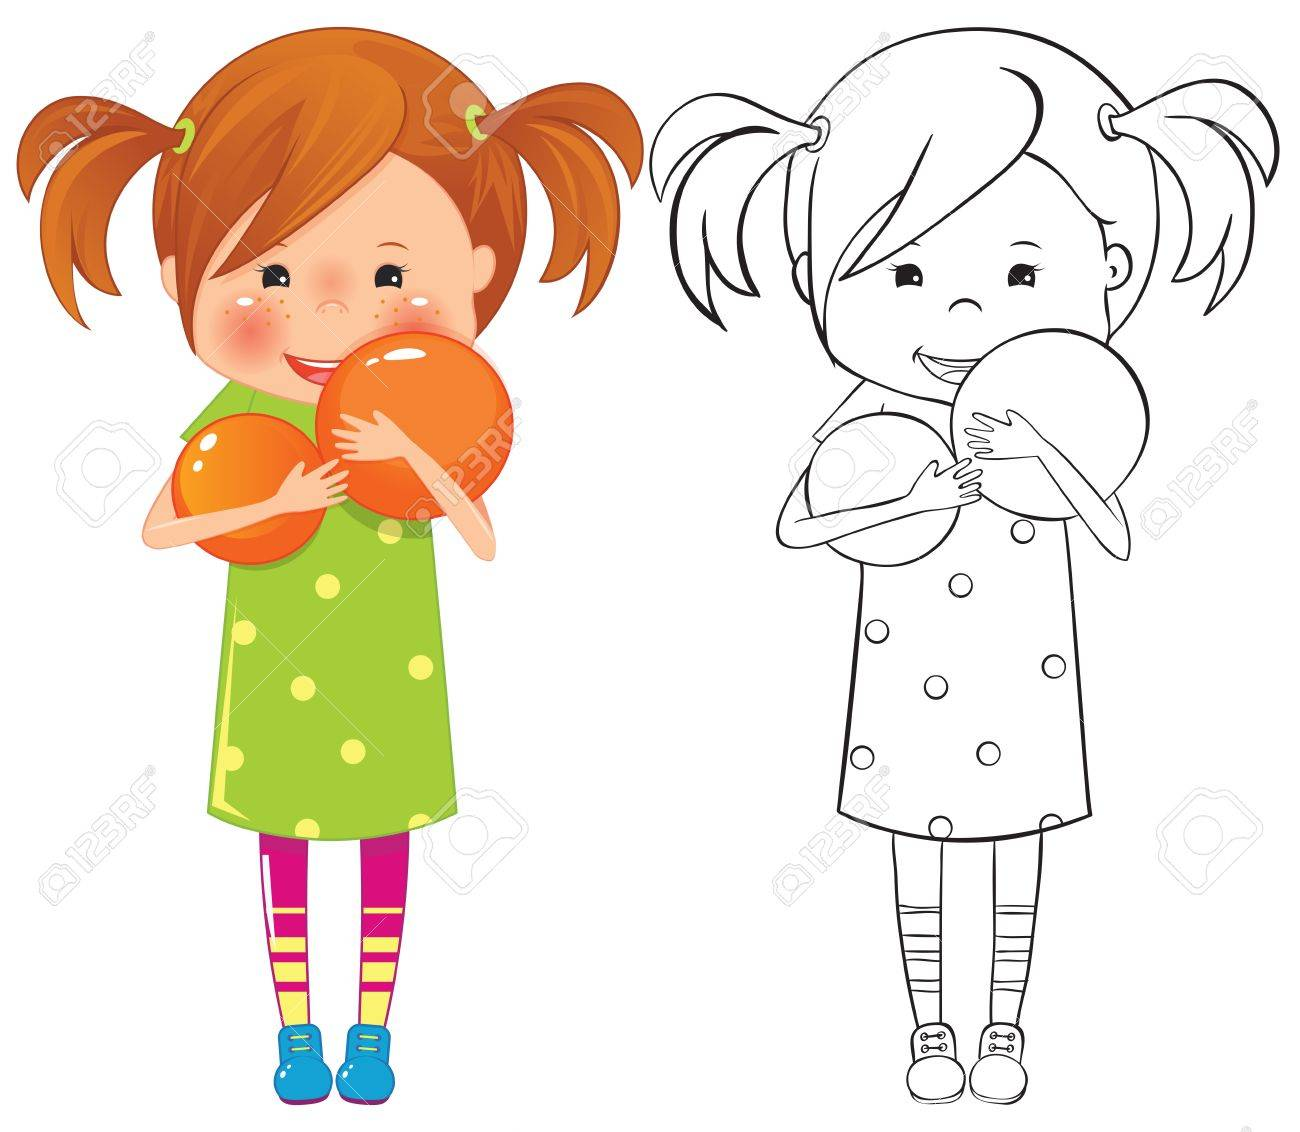 Girl with ball - color and outline illustration Stock Vector - 16647962